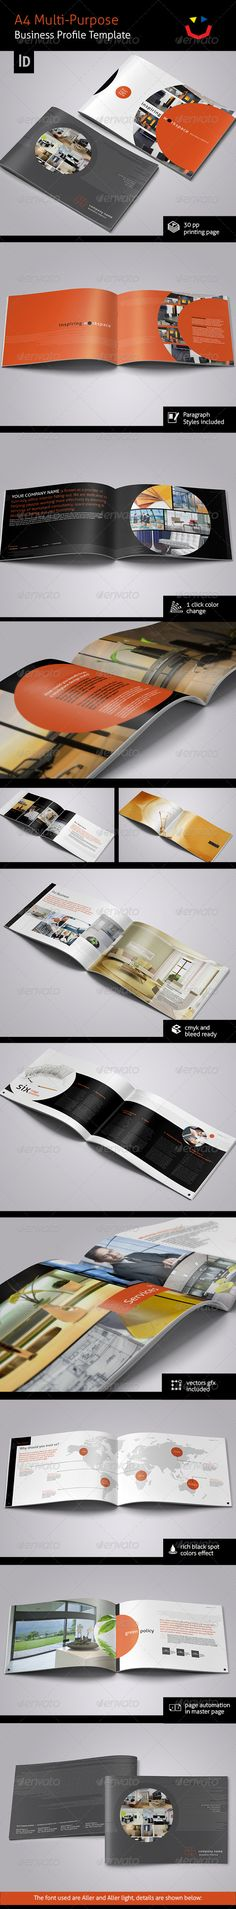 Landscape Brochure Mock-Up Set Mockup, Brochures and Brochure - landscape brochure